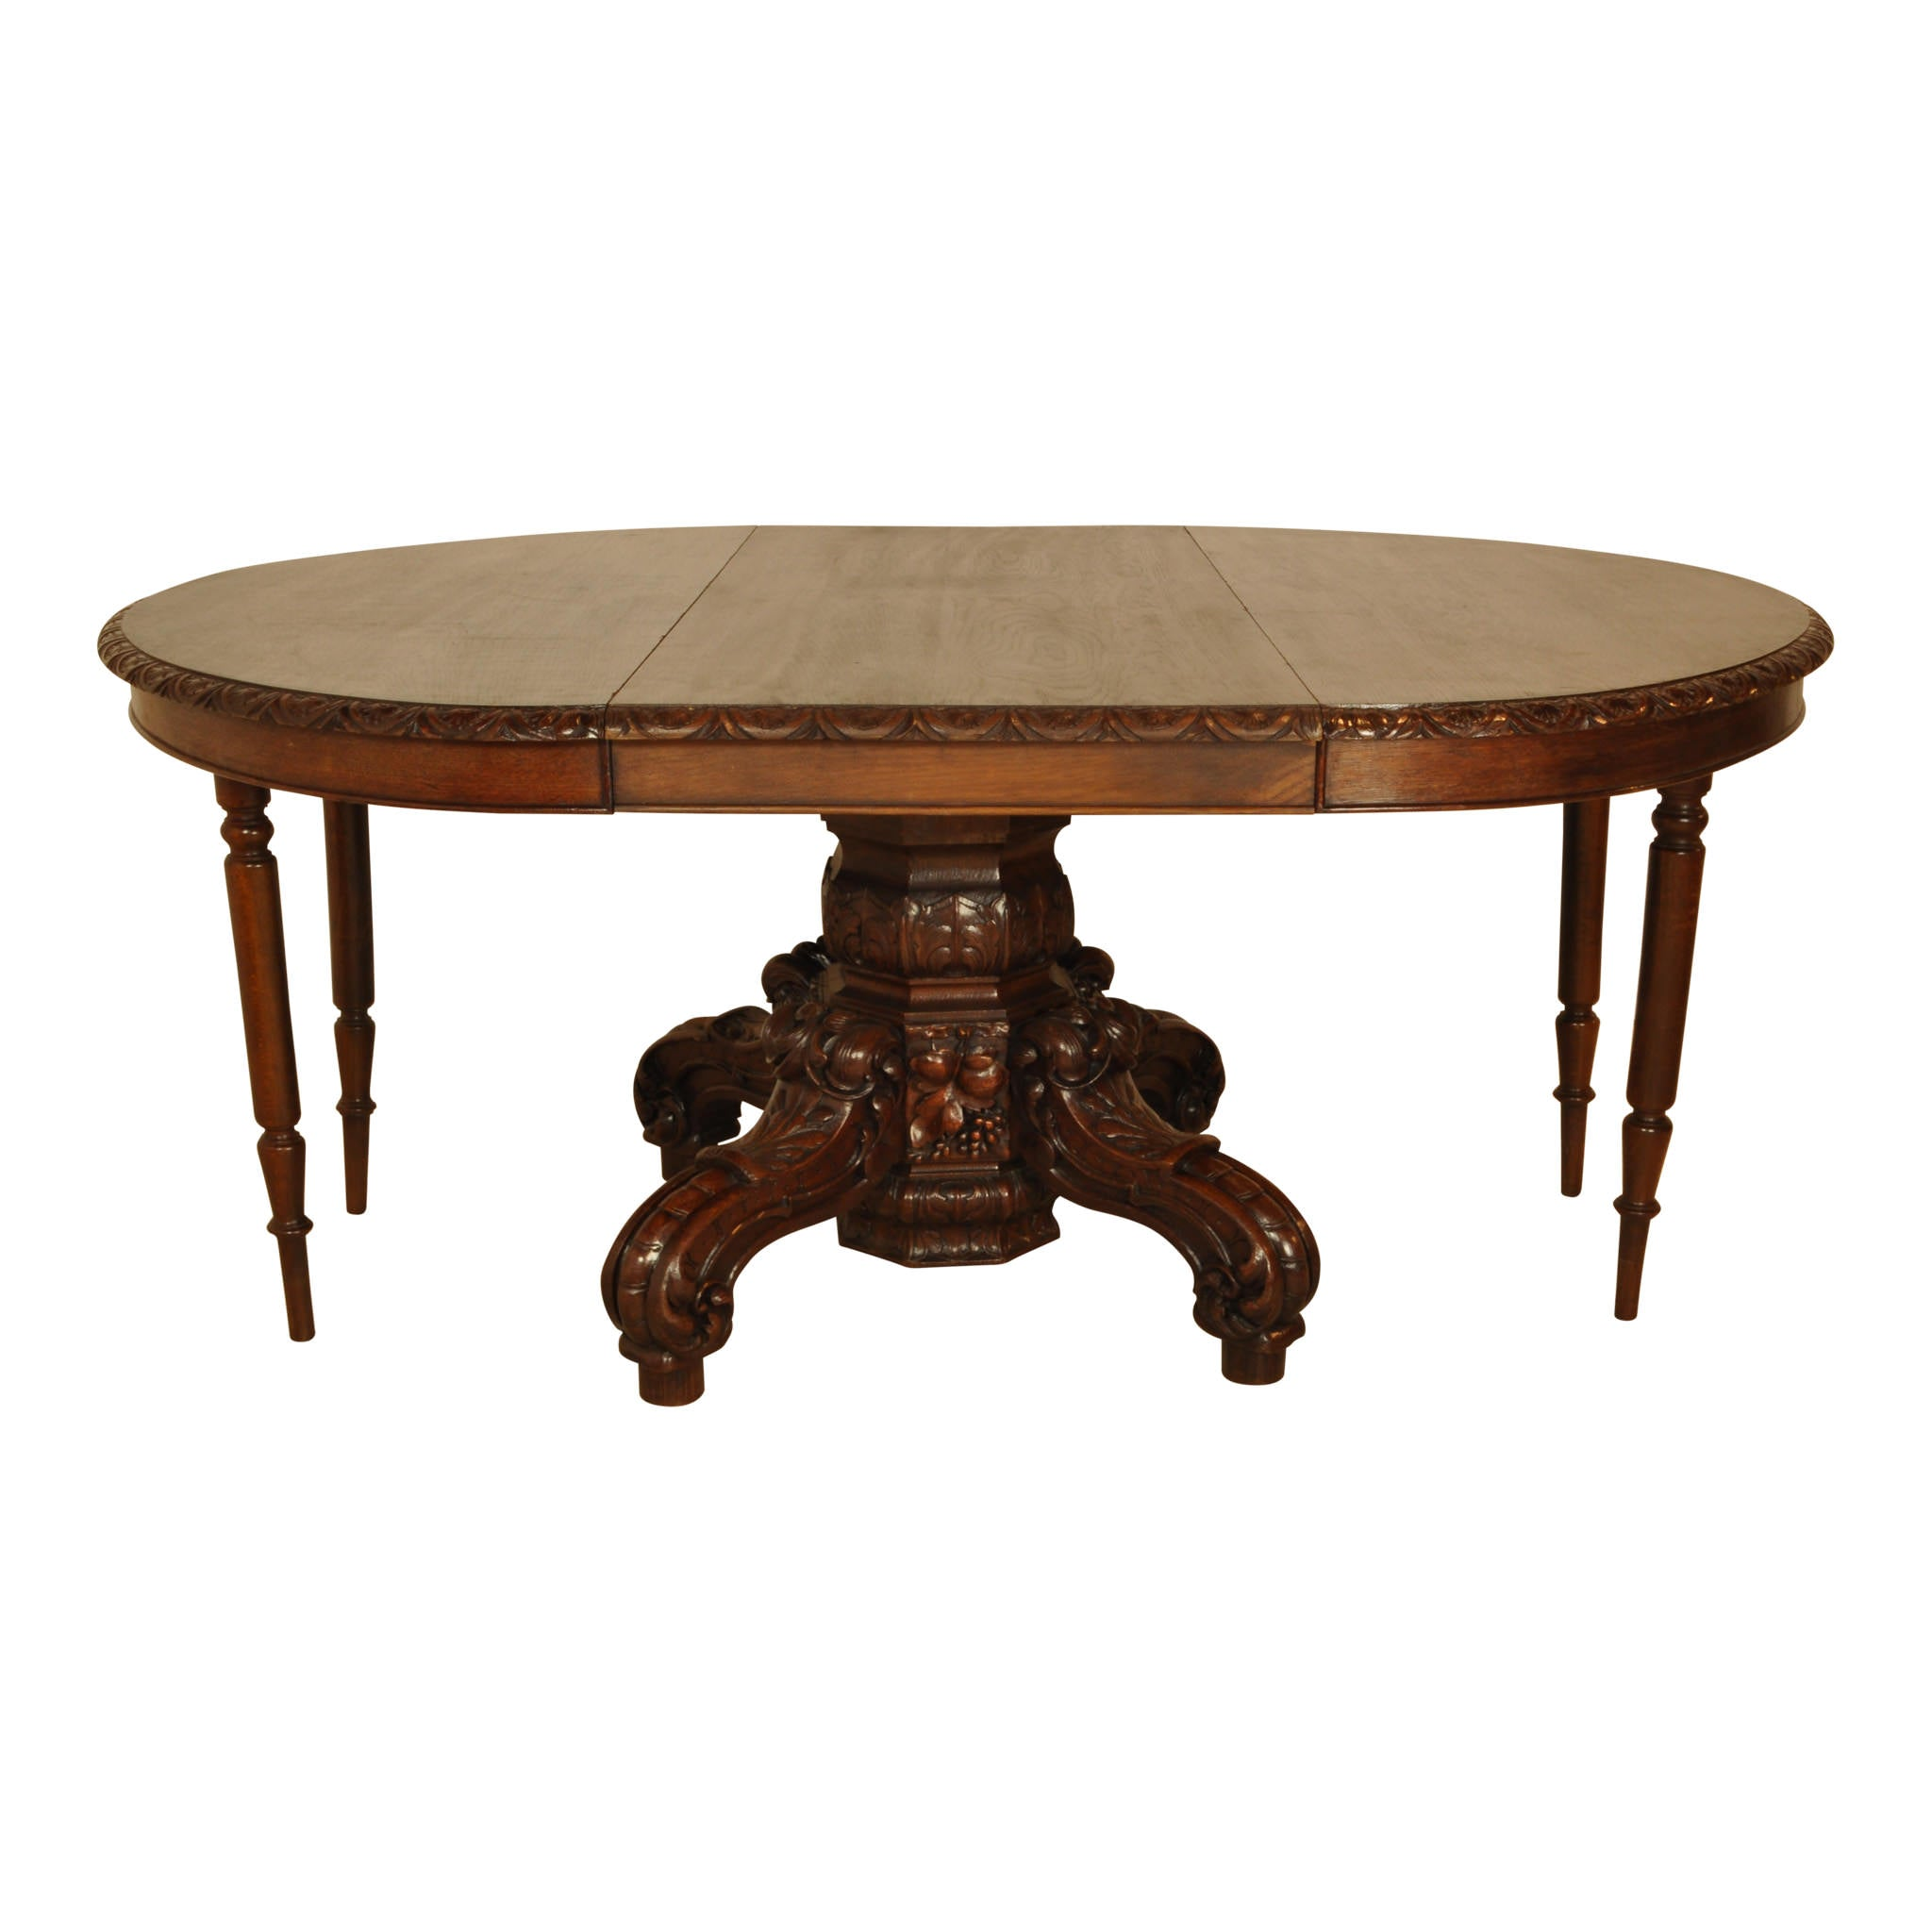 Oval Hunt Table with Leaf